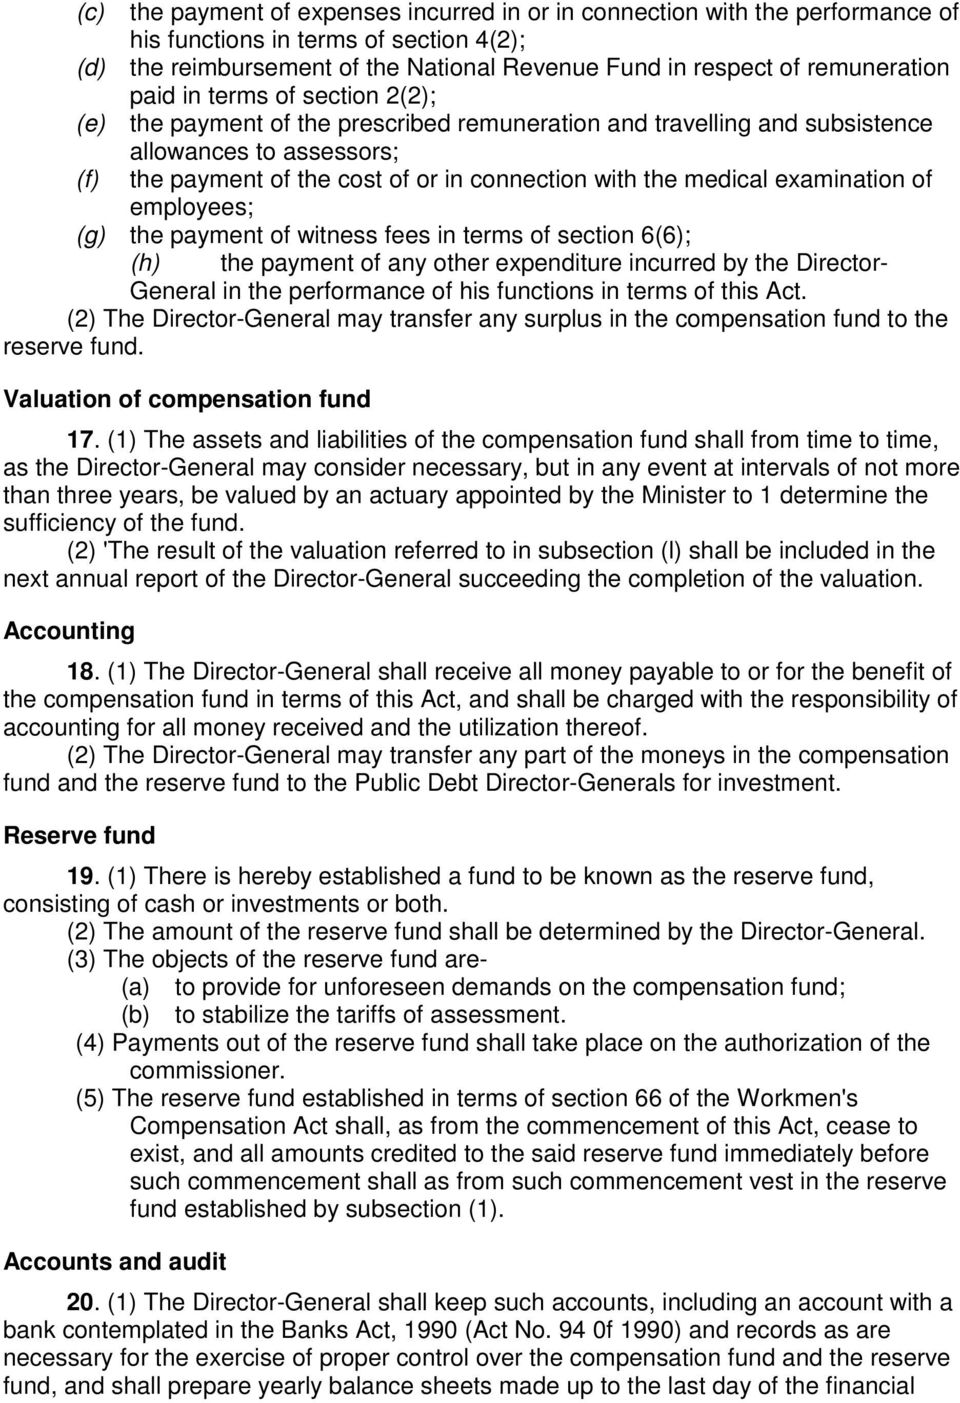 examination of employees; (g) the payment of witness fees in terms of section 6(6); (h) the payment of any other expenditure incurred by the Director- General in the performance of his functions in